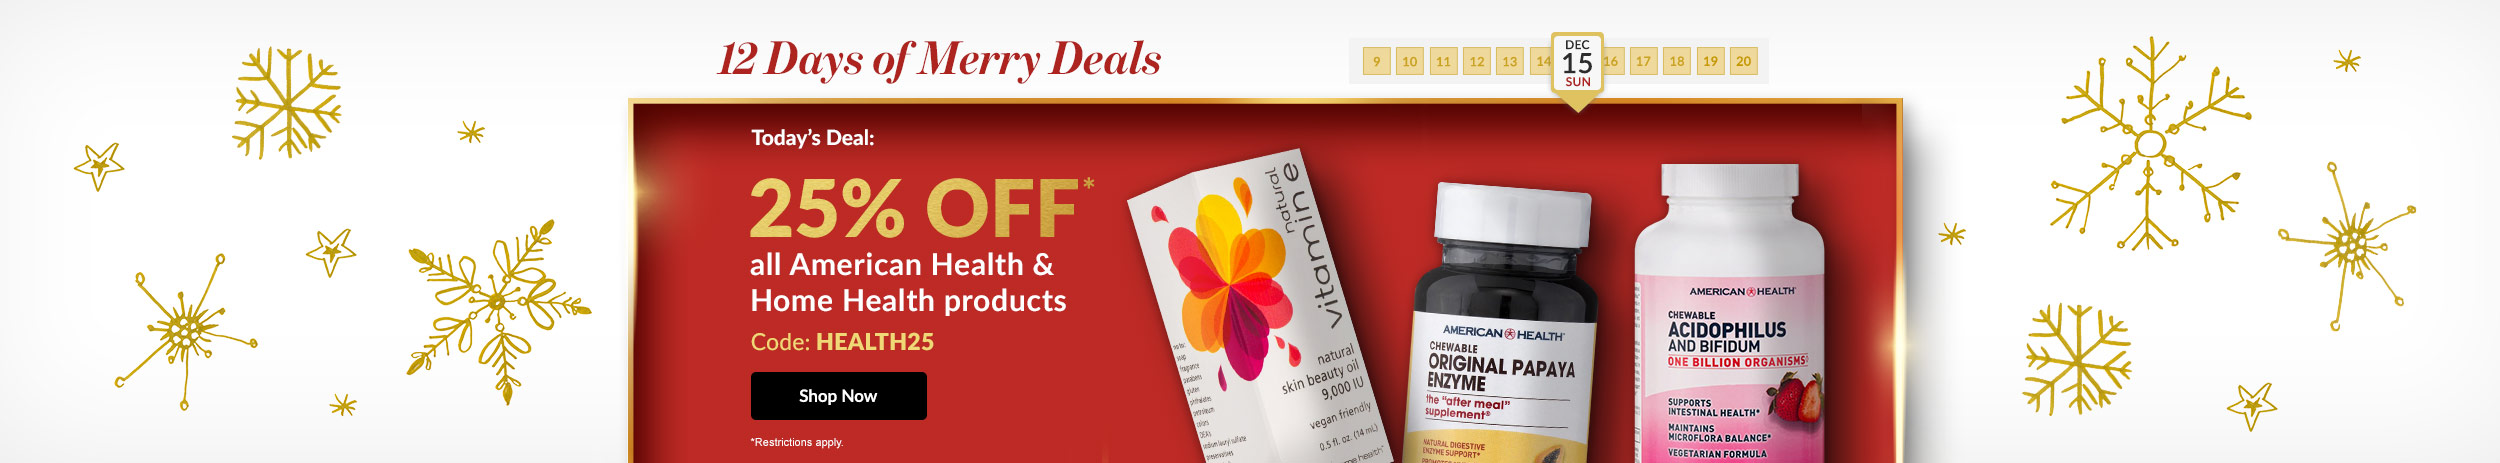 12 Days of Merry Deals: 25% OFF* all American Health & Home Health products - Code: HEALTH25. *Exclusions apply.